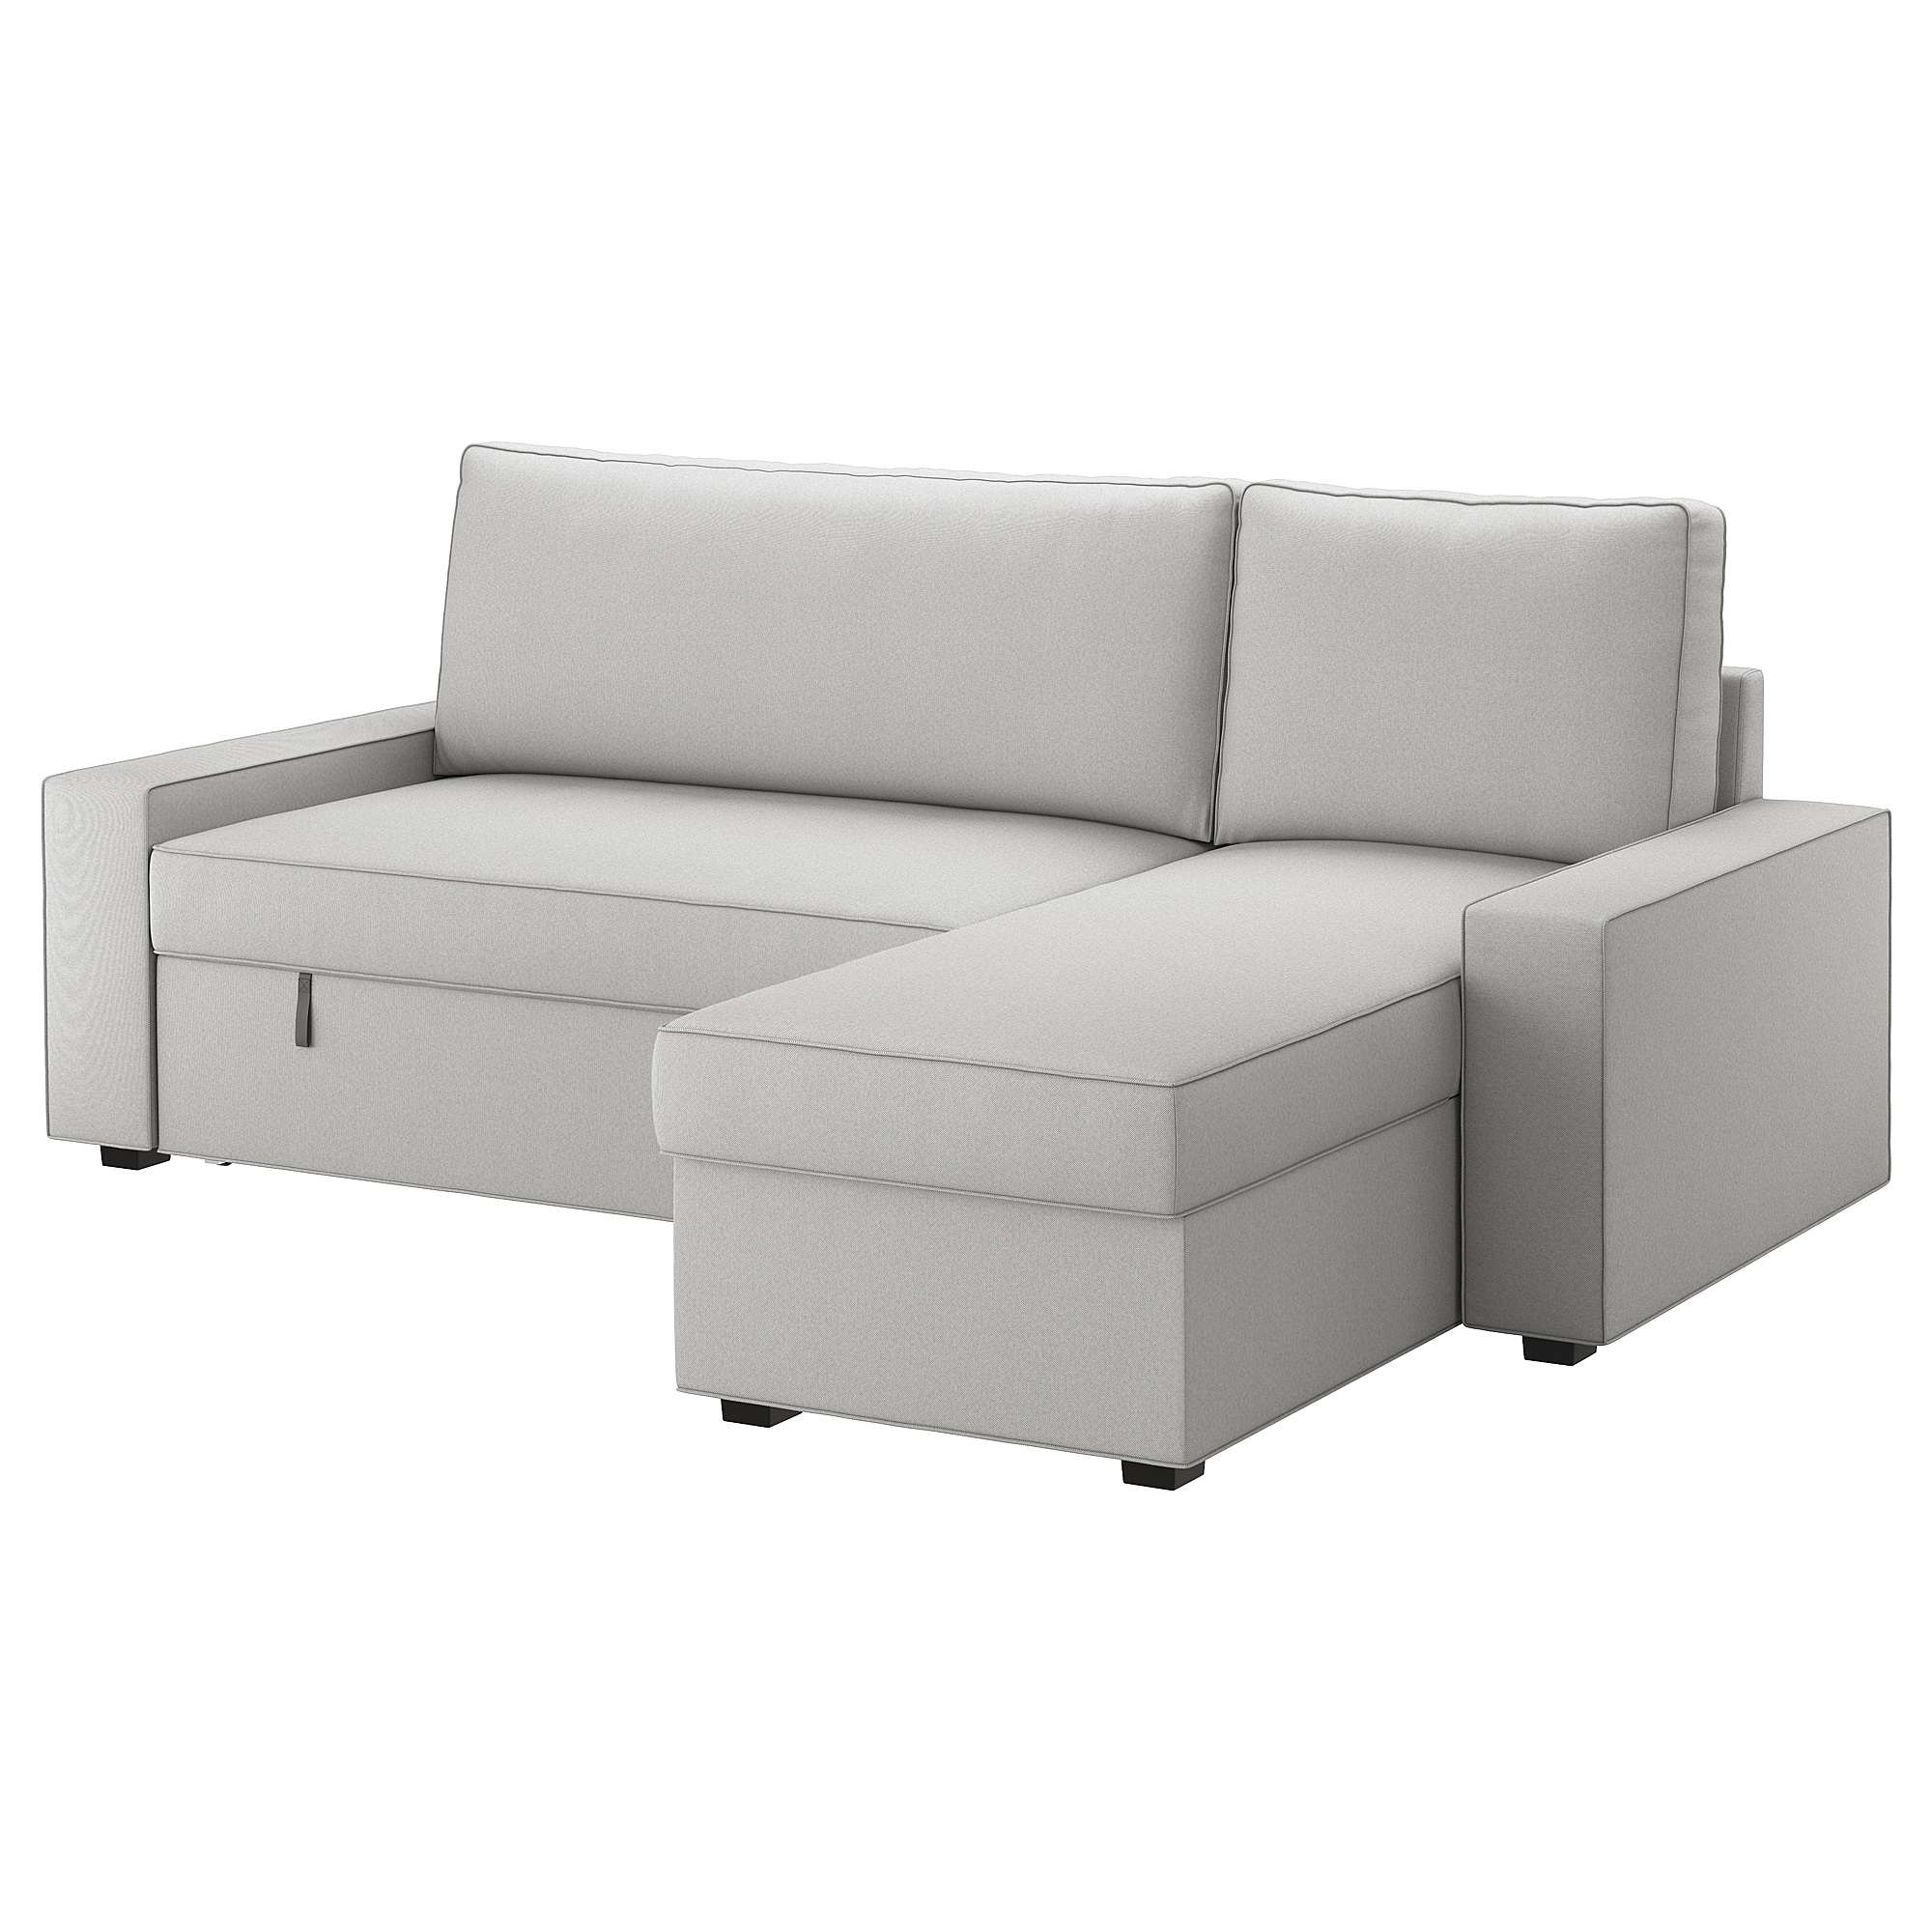 Sofa bed with chaise longue VILASUND Orrsta light grey